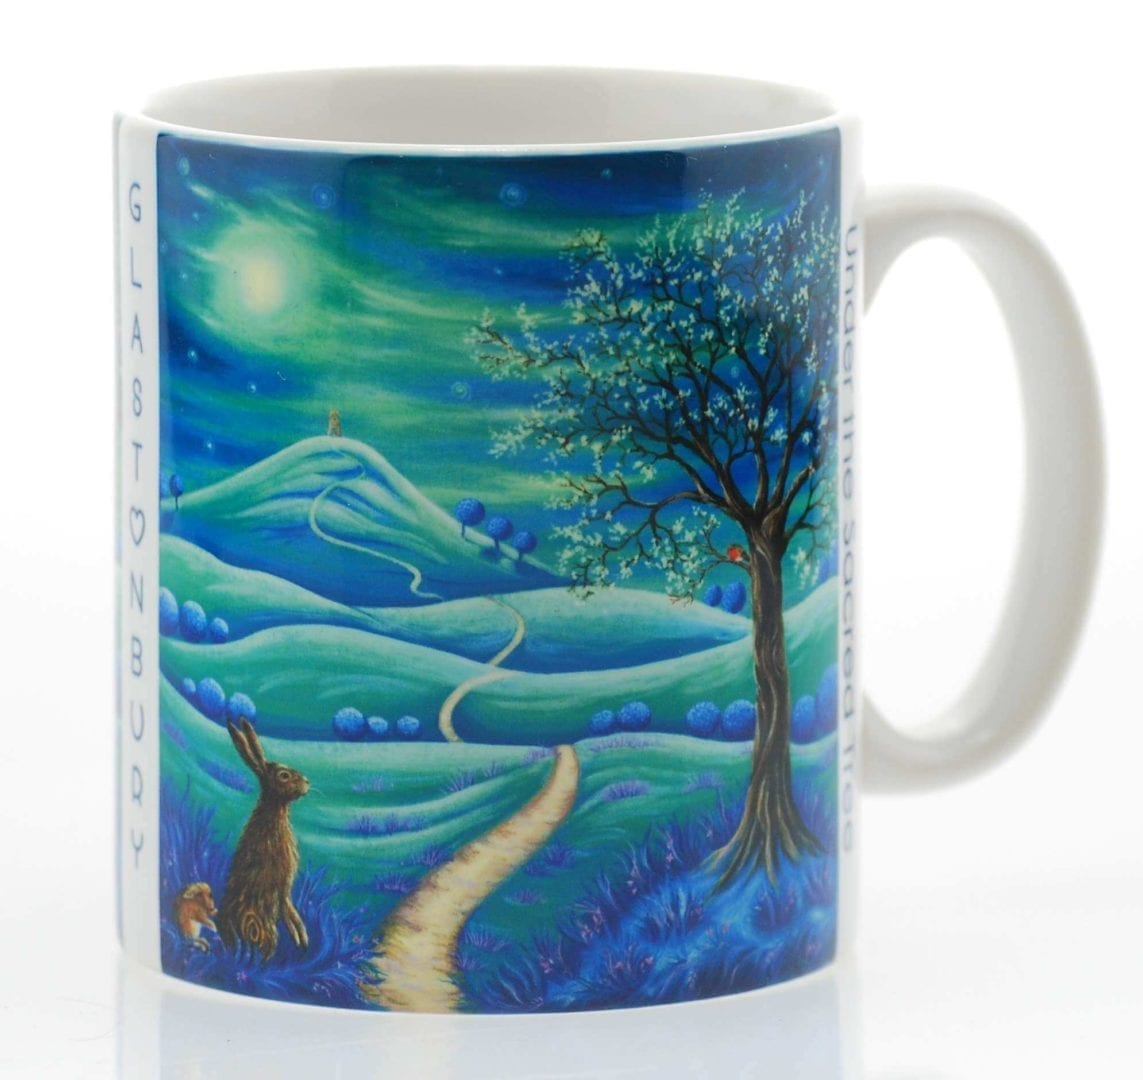 Happy Art Mugs